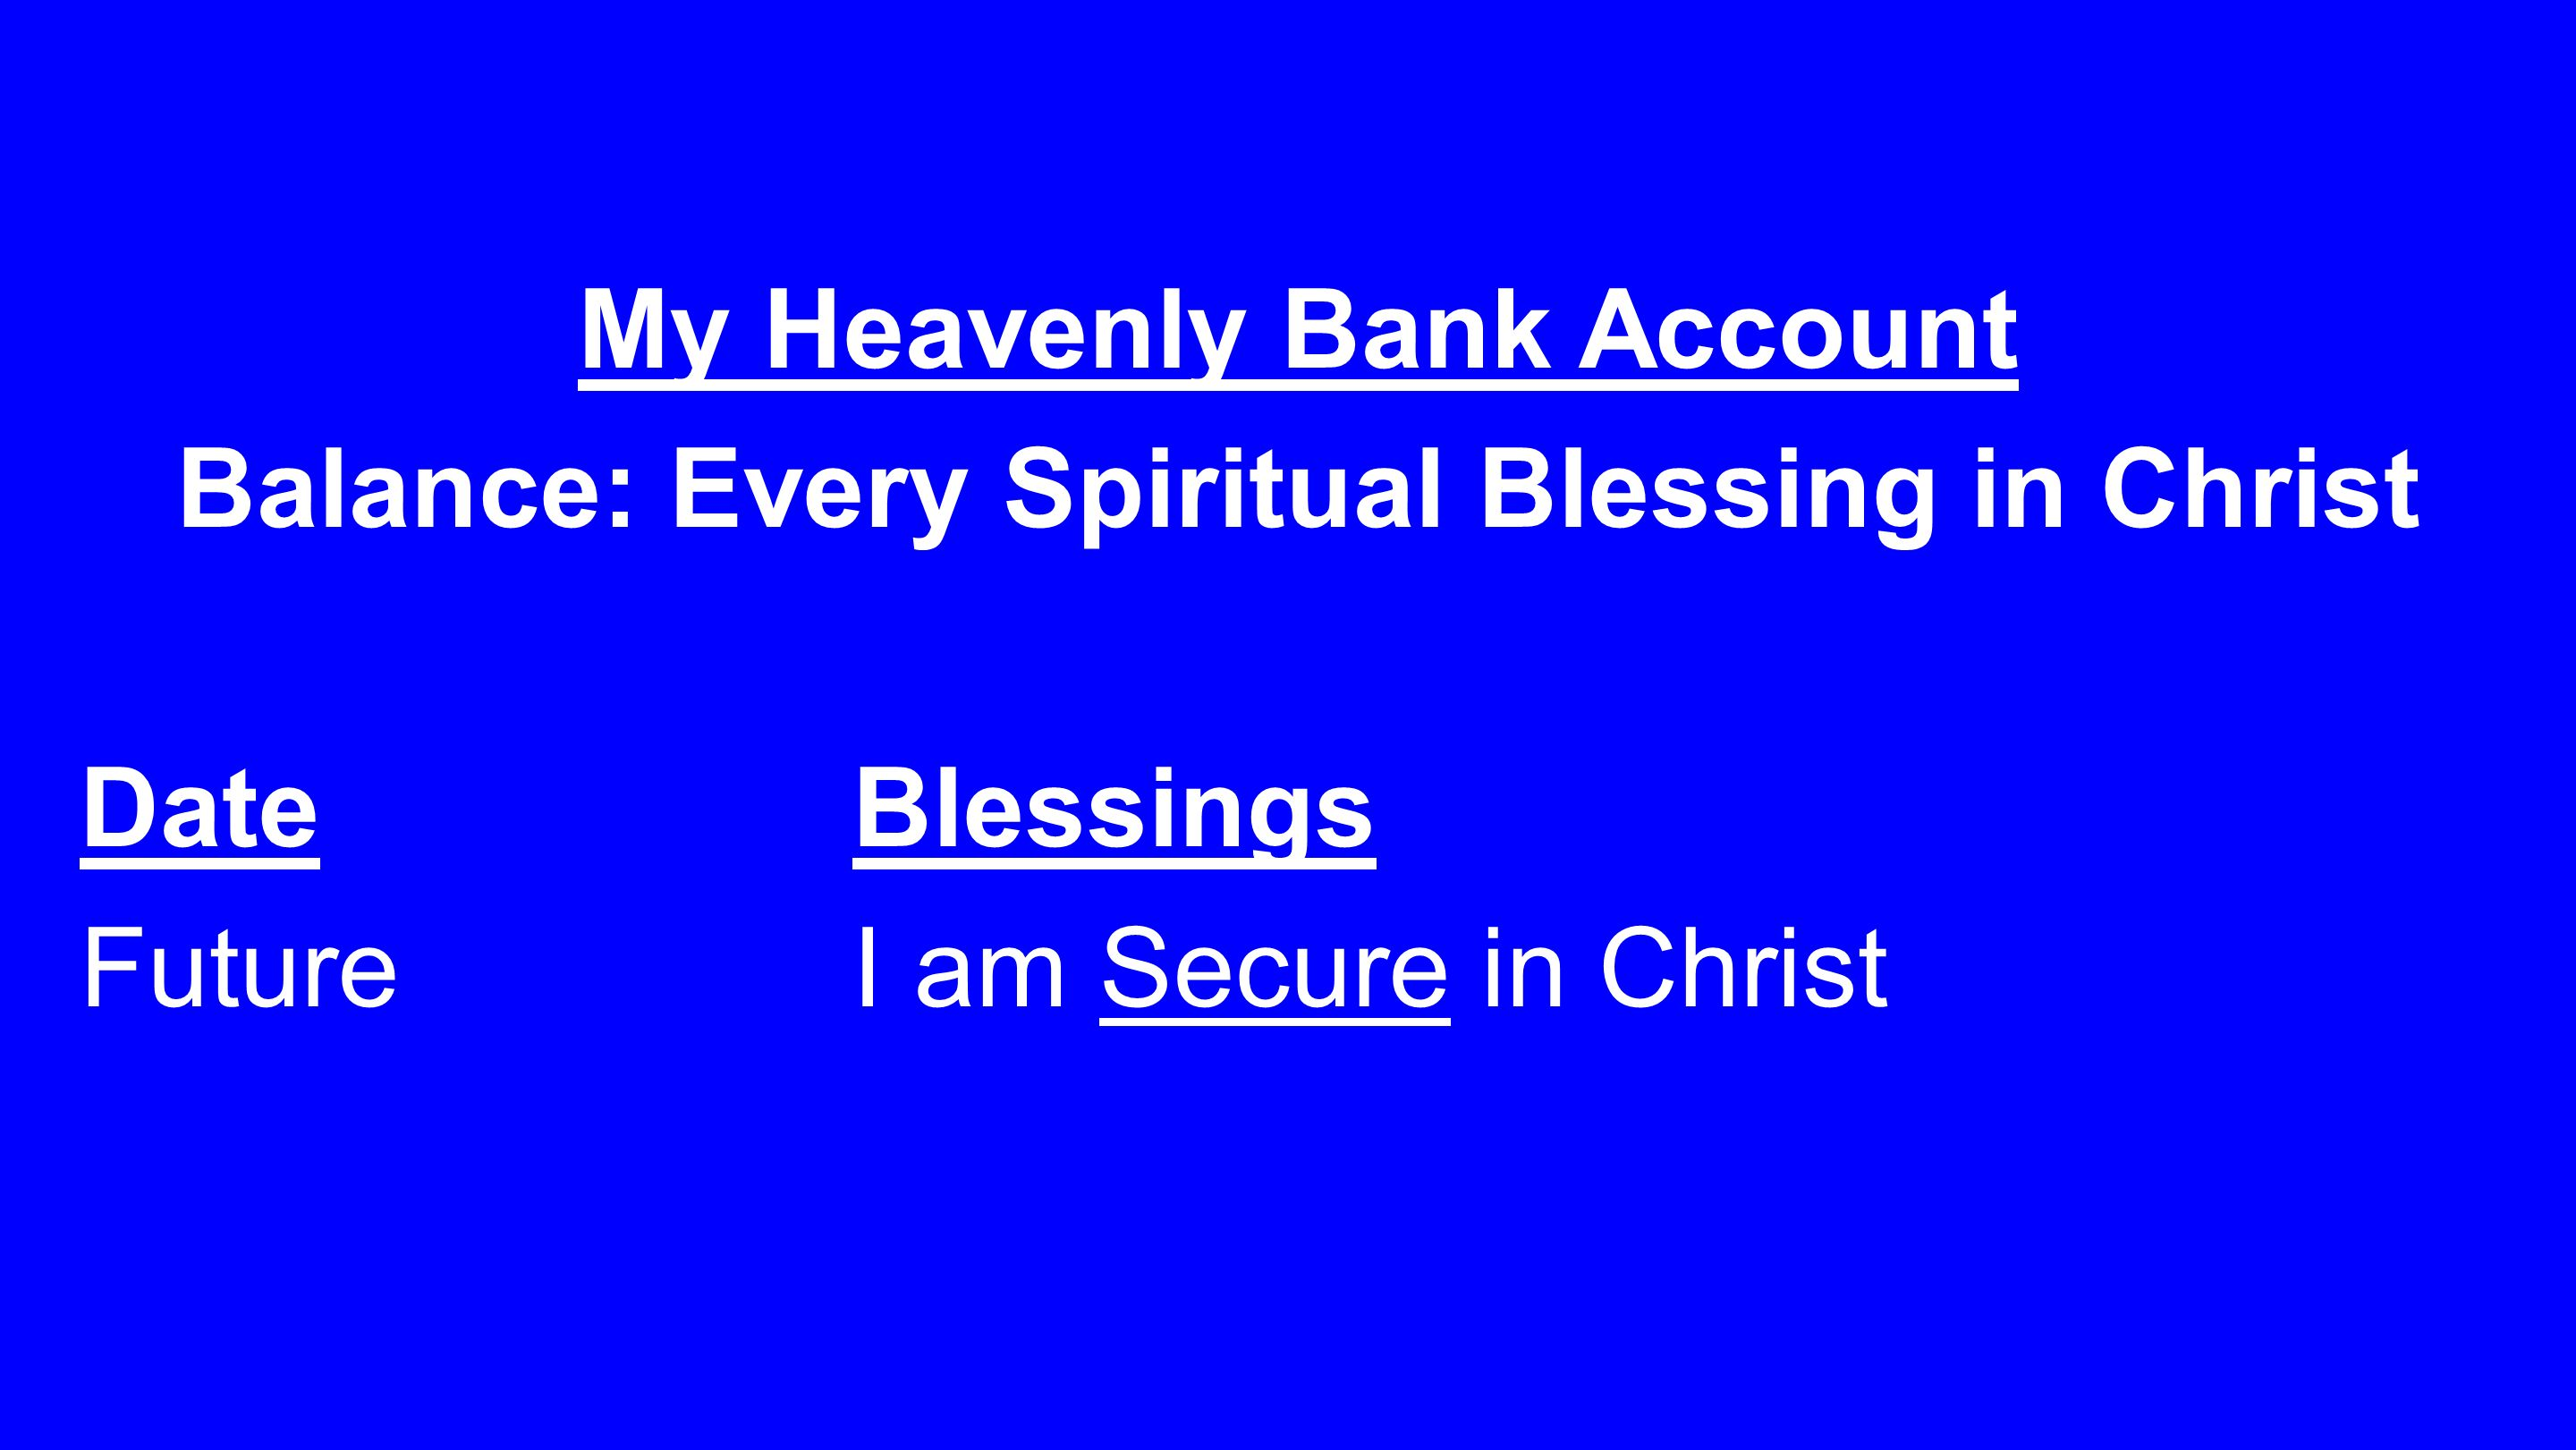 My Heavenly Bank Account Balance: Every Spiritual Blessing in Christ DateBlessings Future I am Secure in Christ